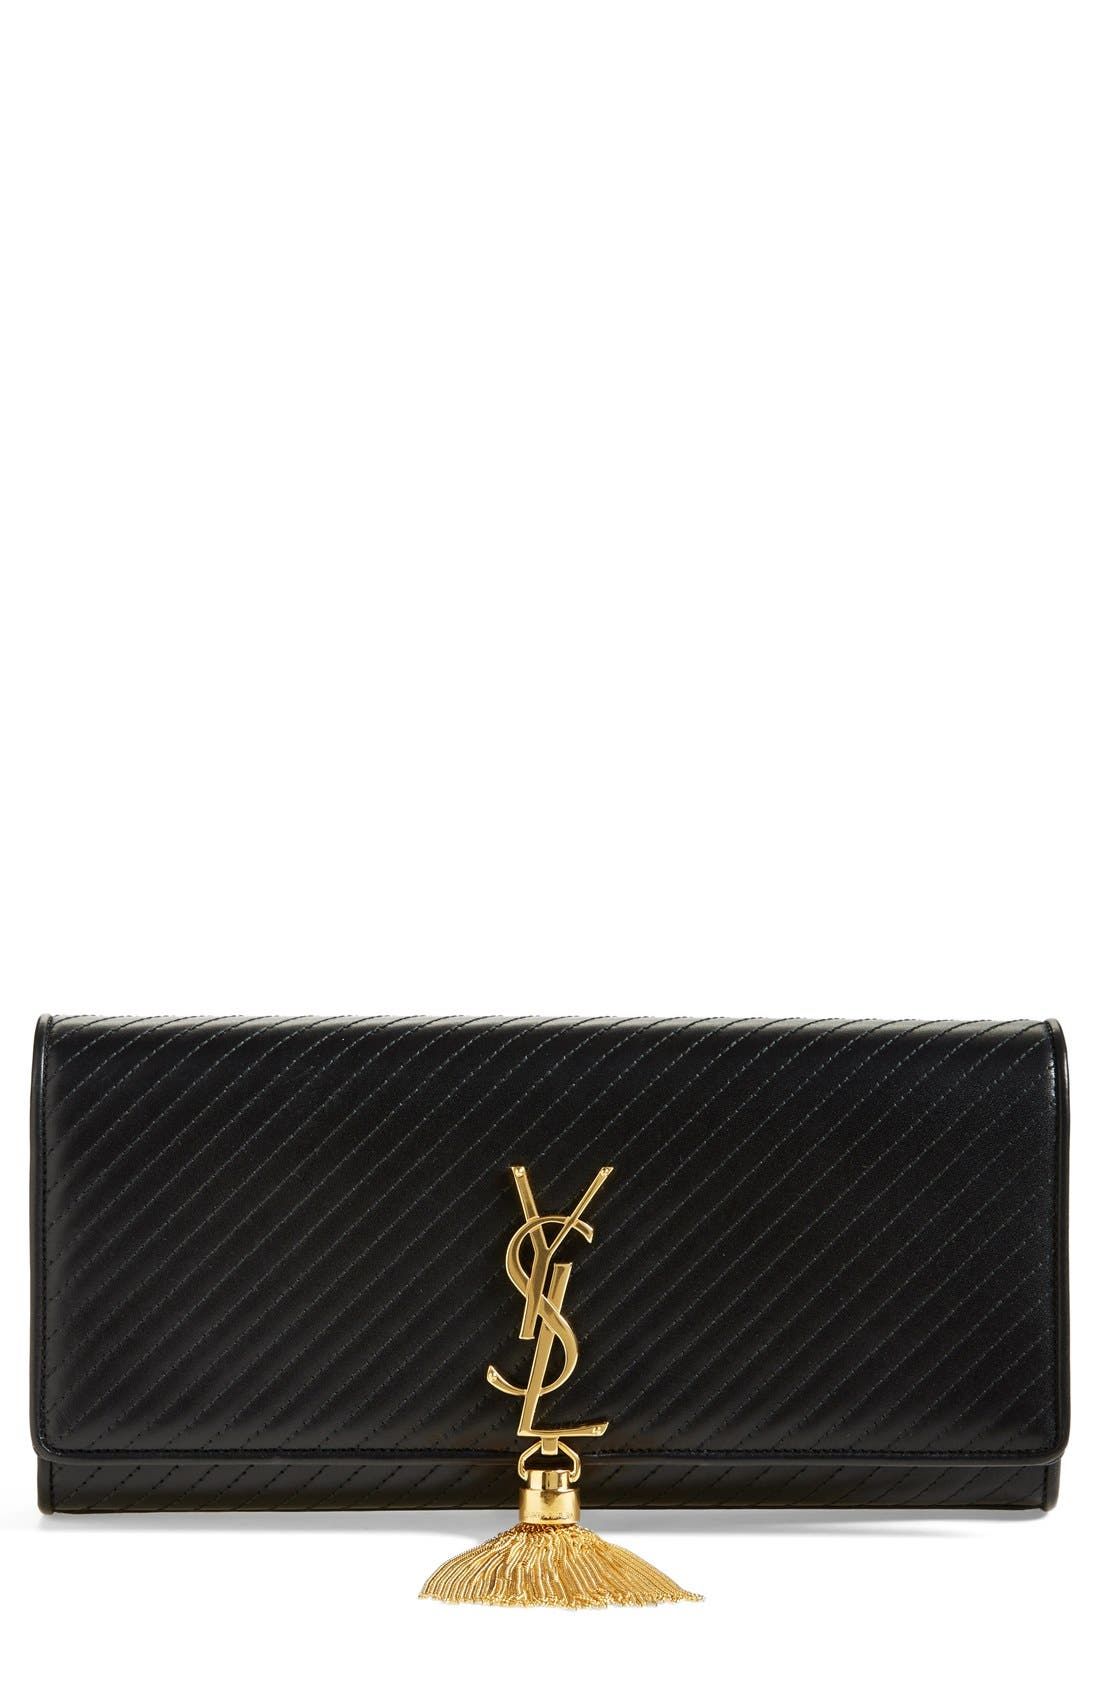 Alternate Image 1 Selected - Saint Laurent 'Cassandre' Quilted Leather Clutch